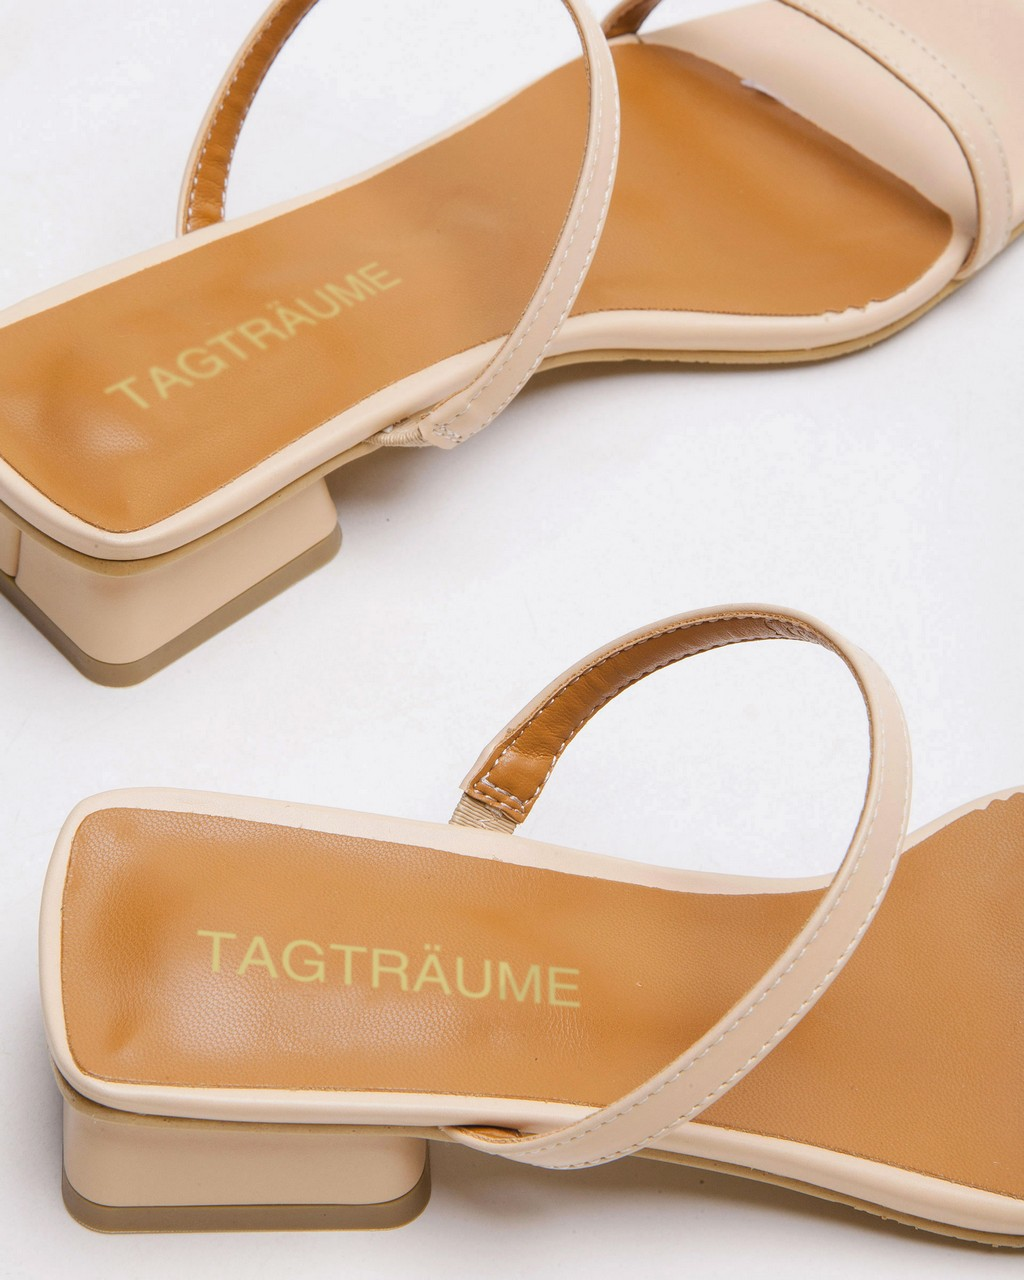 Tagtraume Common-07 - Beige(베이지)